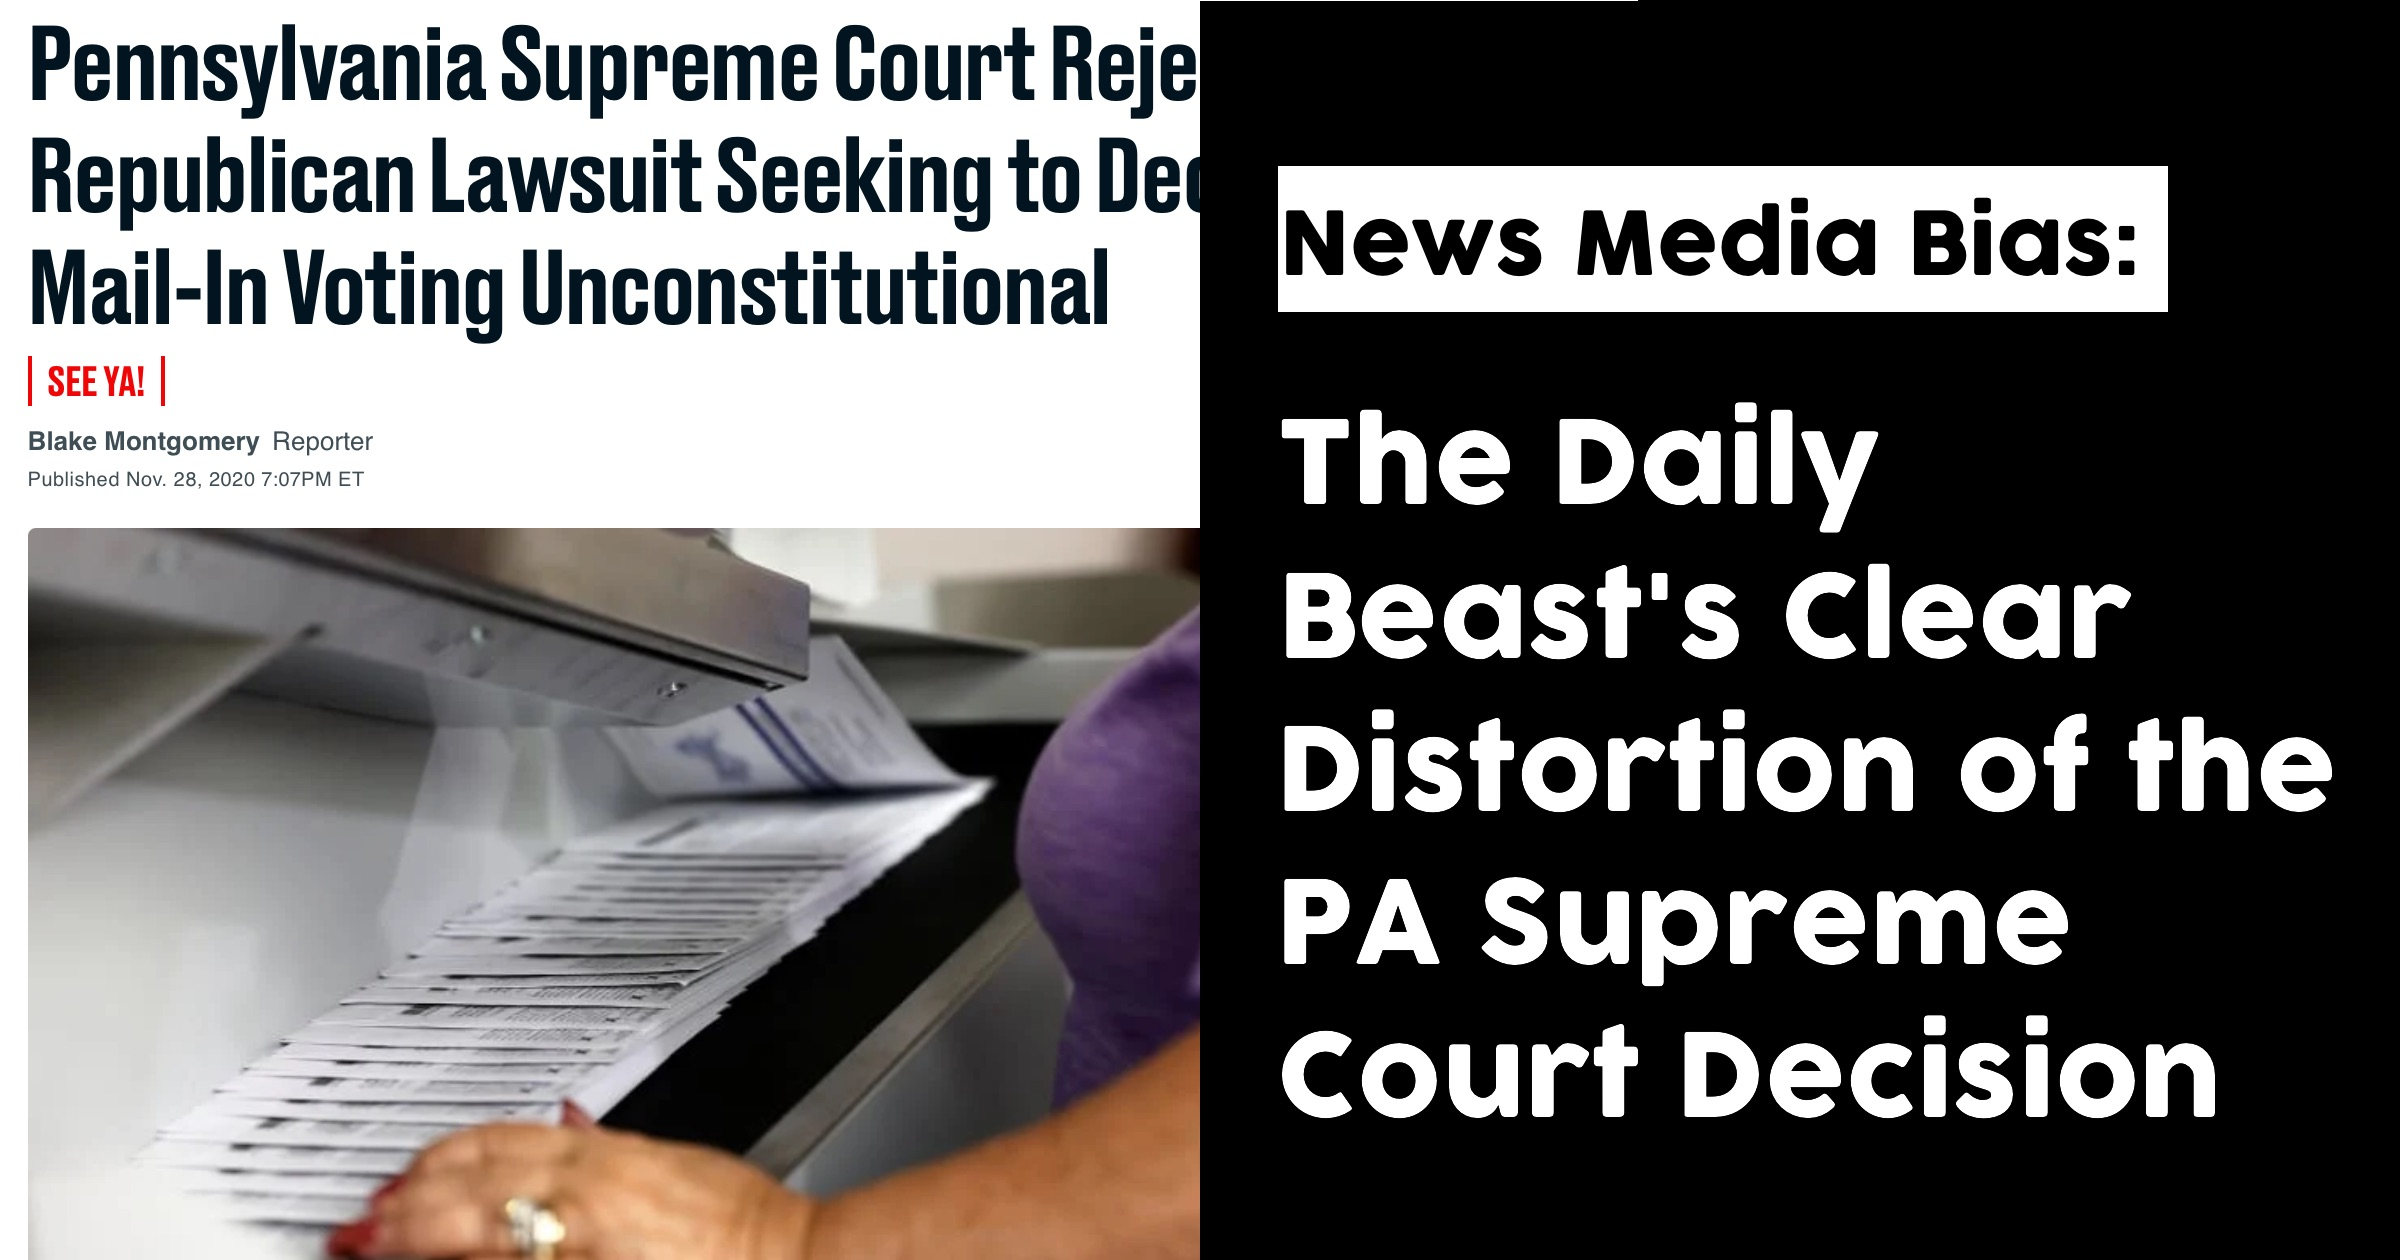 The Daily Beast's Purposeful Distortion of the PA Supreme Court